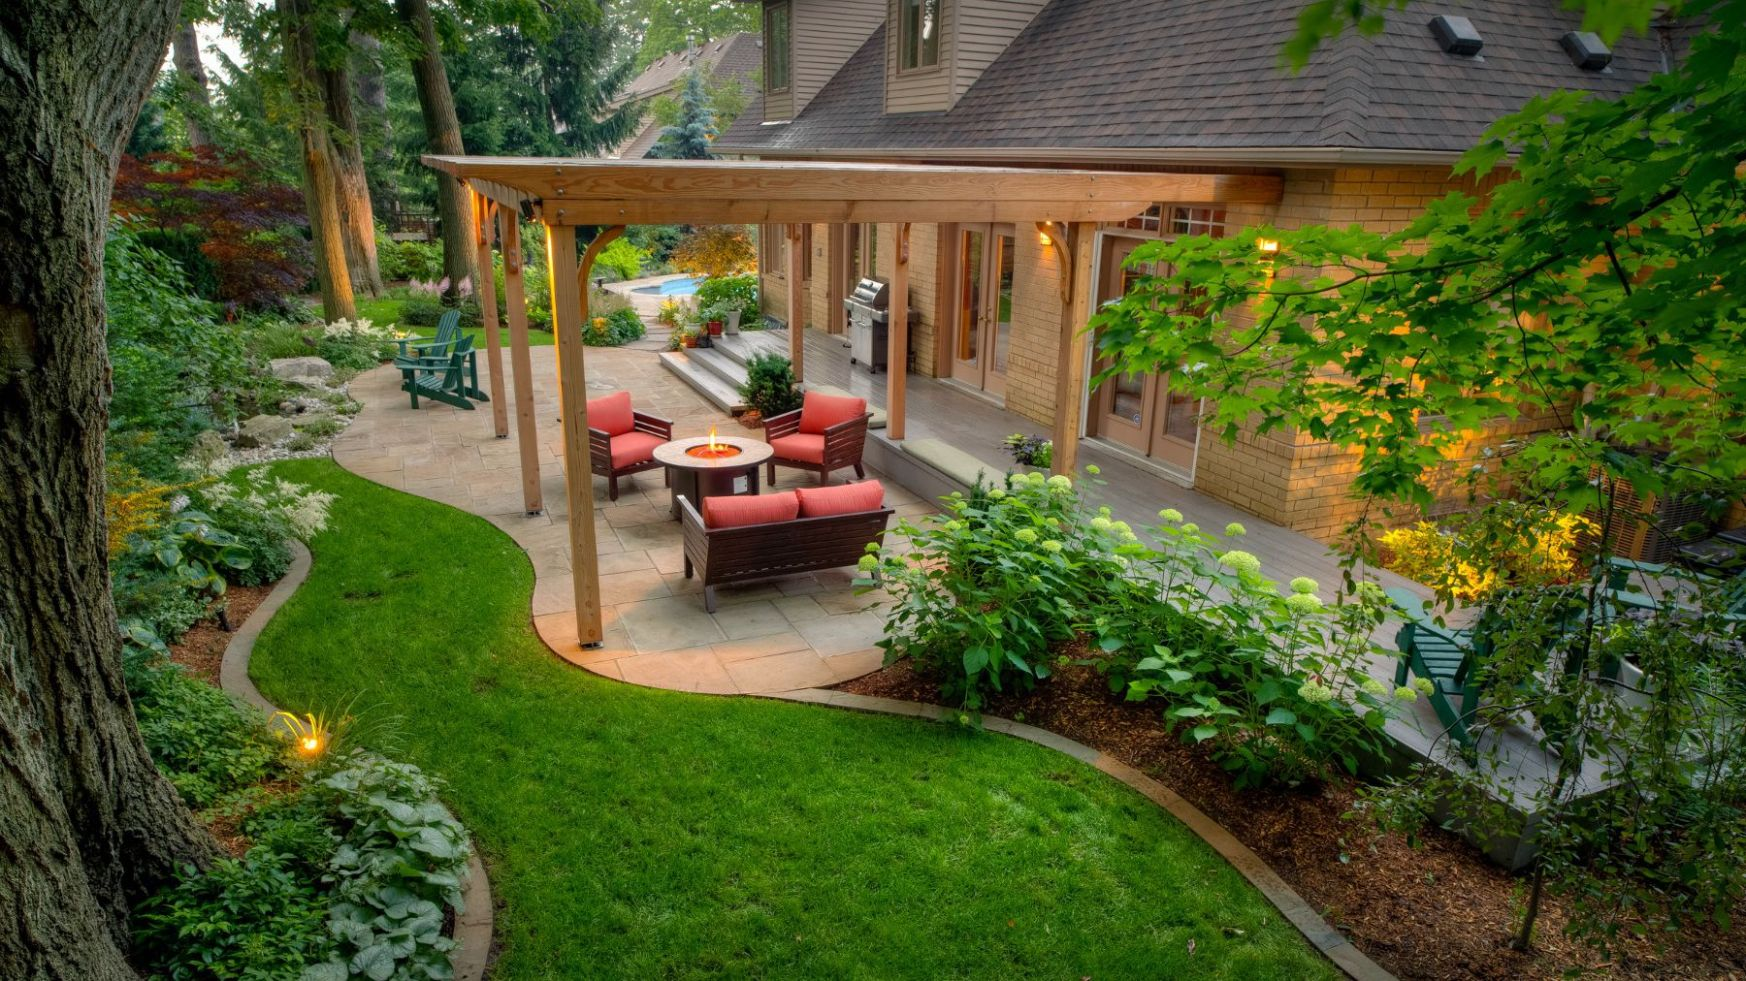 12 Backyard Landscaping Ideas to Inspire You - backyard ideas pictures